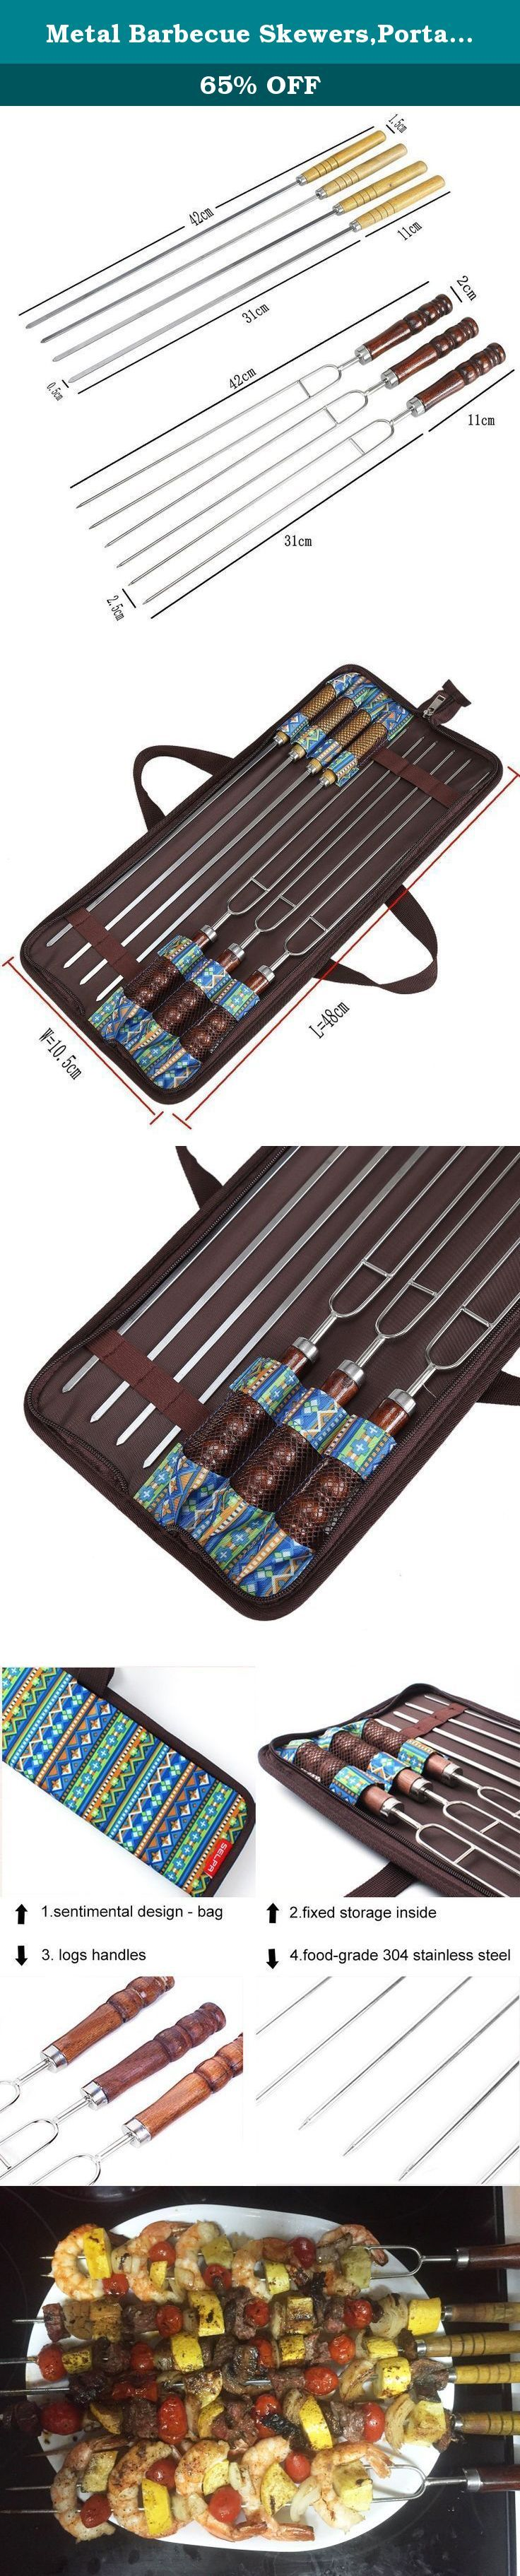 Metal Barbecue Skewers,Portable 4 Stainless Steel Oblate Kabob Sticks and 3 U Shish Stick 7 Pcs/Set. If you enjoy grilled kabobs, you're probably familiar with some challenges bellow : 1.having challenge to remove the cooked food from the skewer; 2.being burn easily with the bamboo skewers,especilly there are kids. and get in troubles with the skewers after meal; 3.the foods are spinning when you turn kabobs on the grill. Our skewers solve the problem *Forged with the precision of fine...